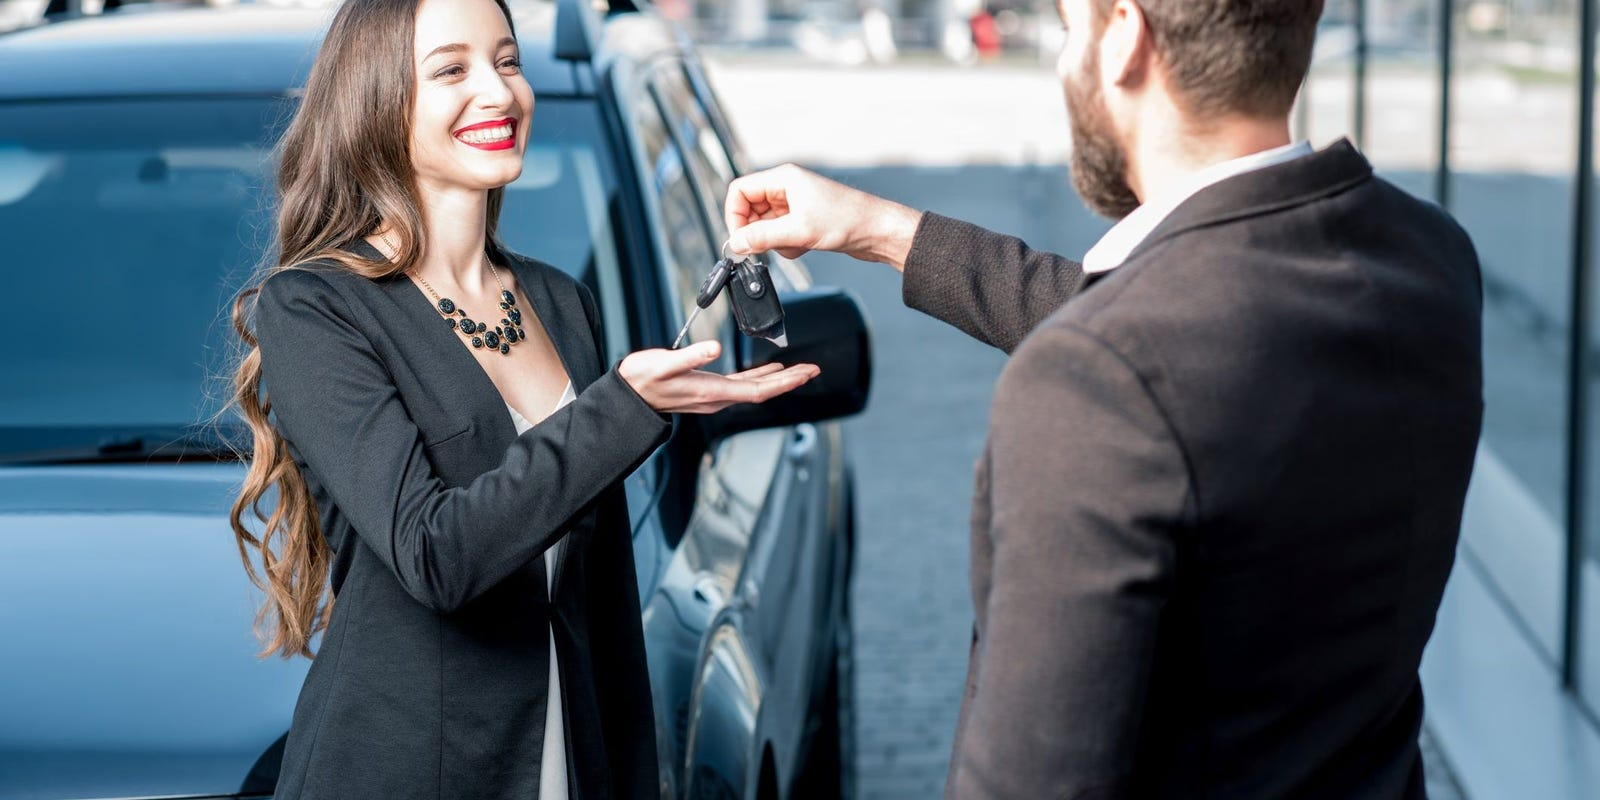 Used car prices soaring as COVID-19 pandemic shakes up new car market